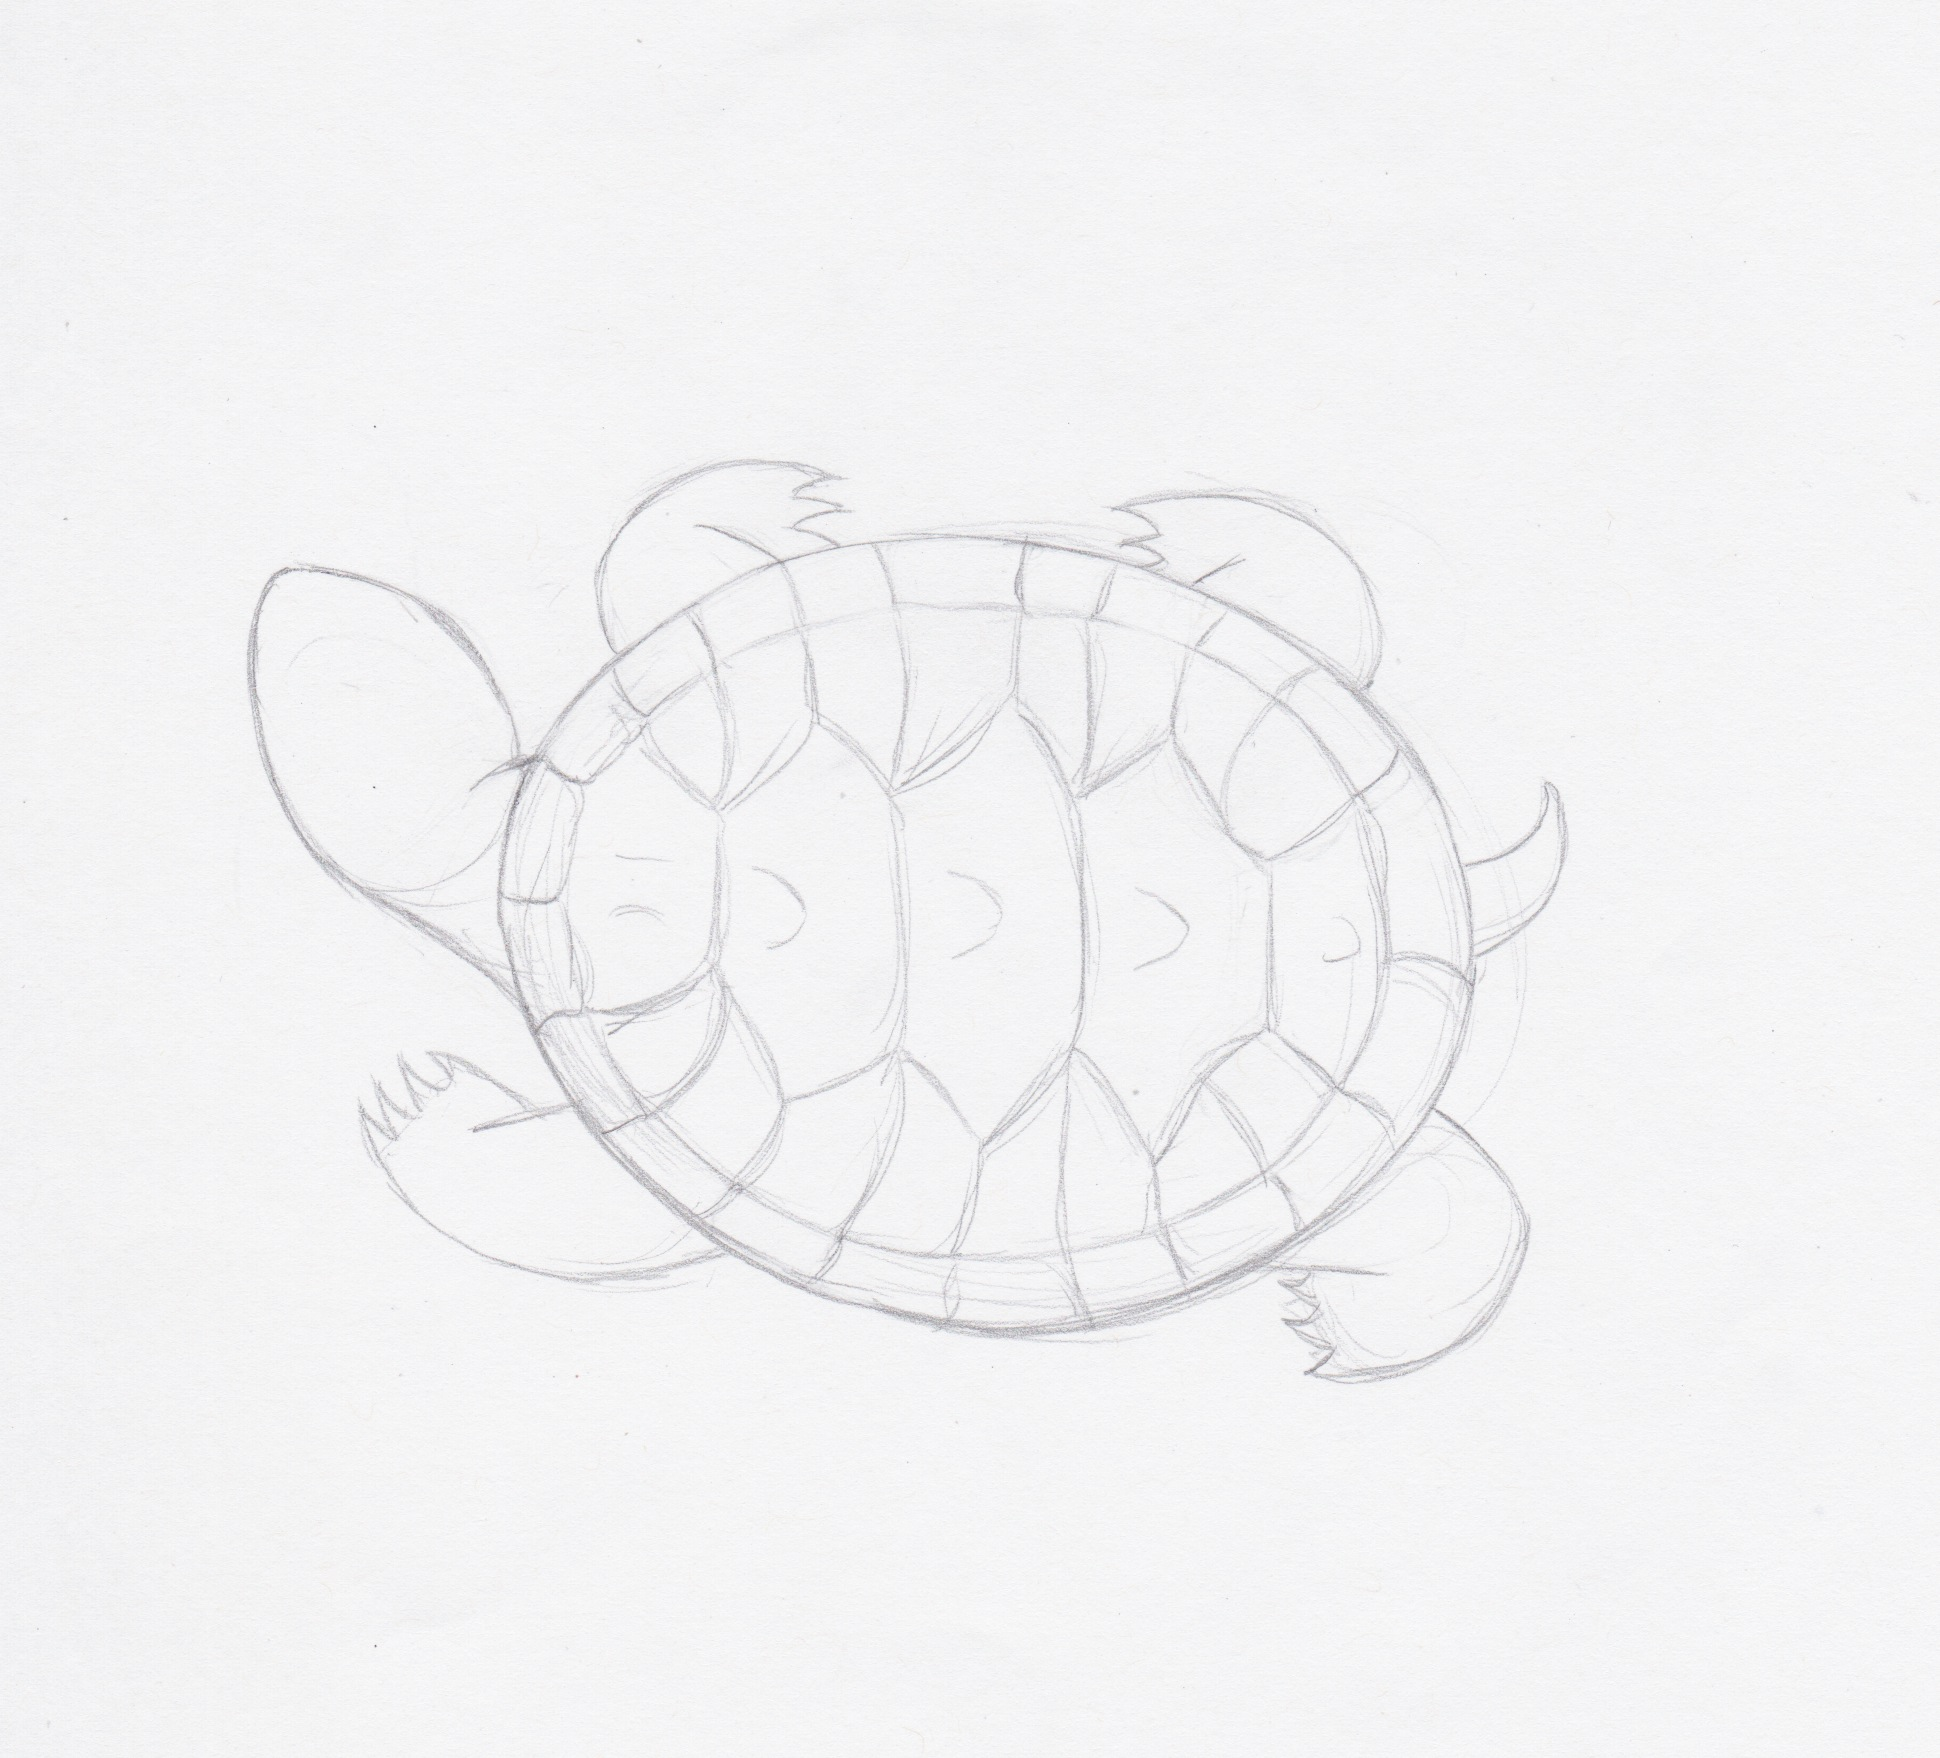 tortuga tatoo gallery of yinyang tattoos clipart turtle with tortuga tatoo simple tortuga. Black Bedroom Furniture Sets. Home Design Ideas